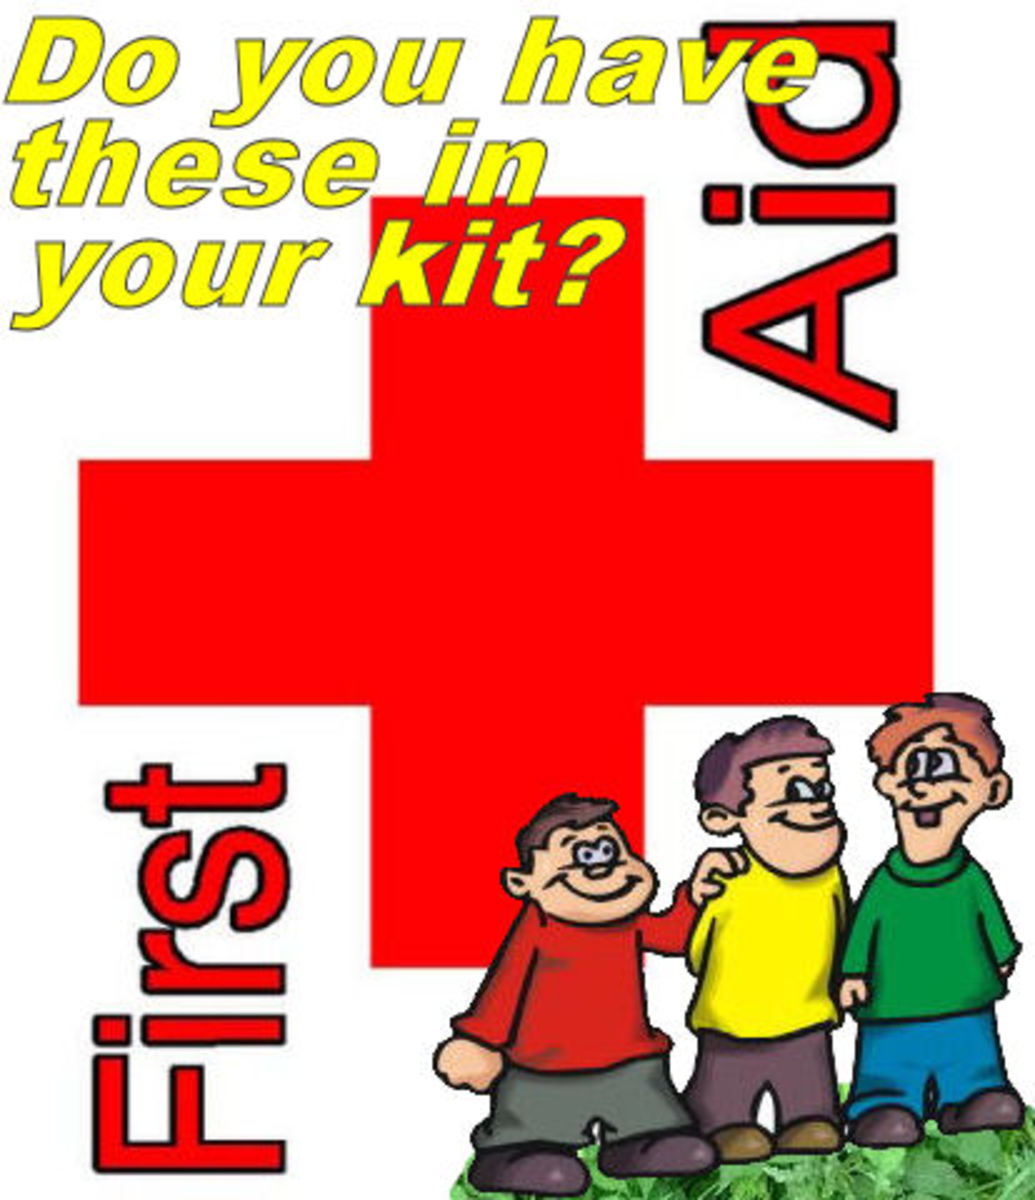 First-aid items for camping with kids